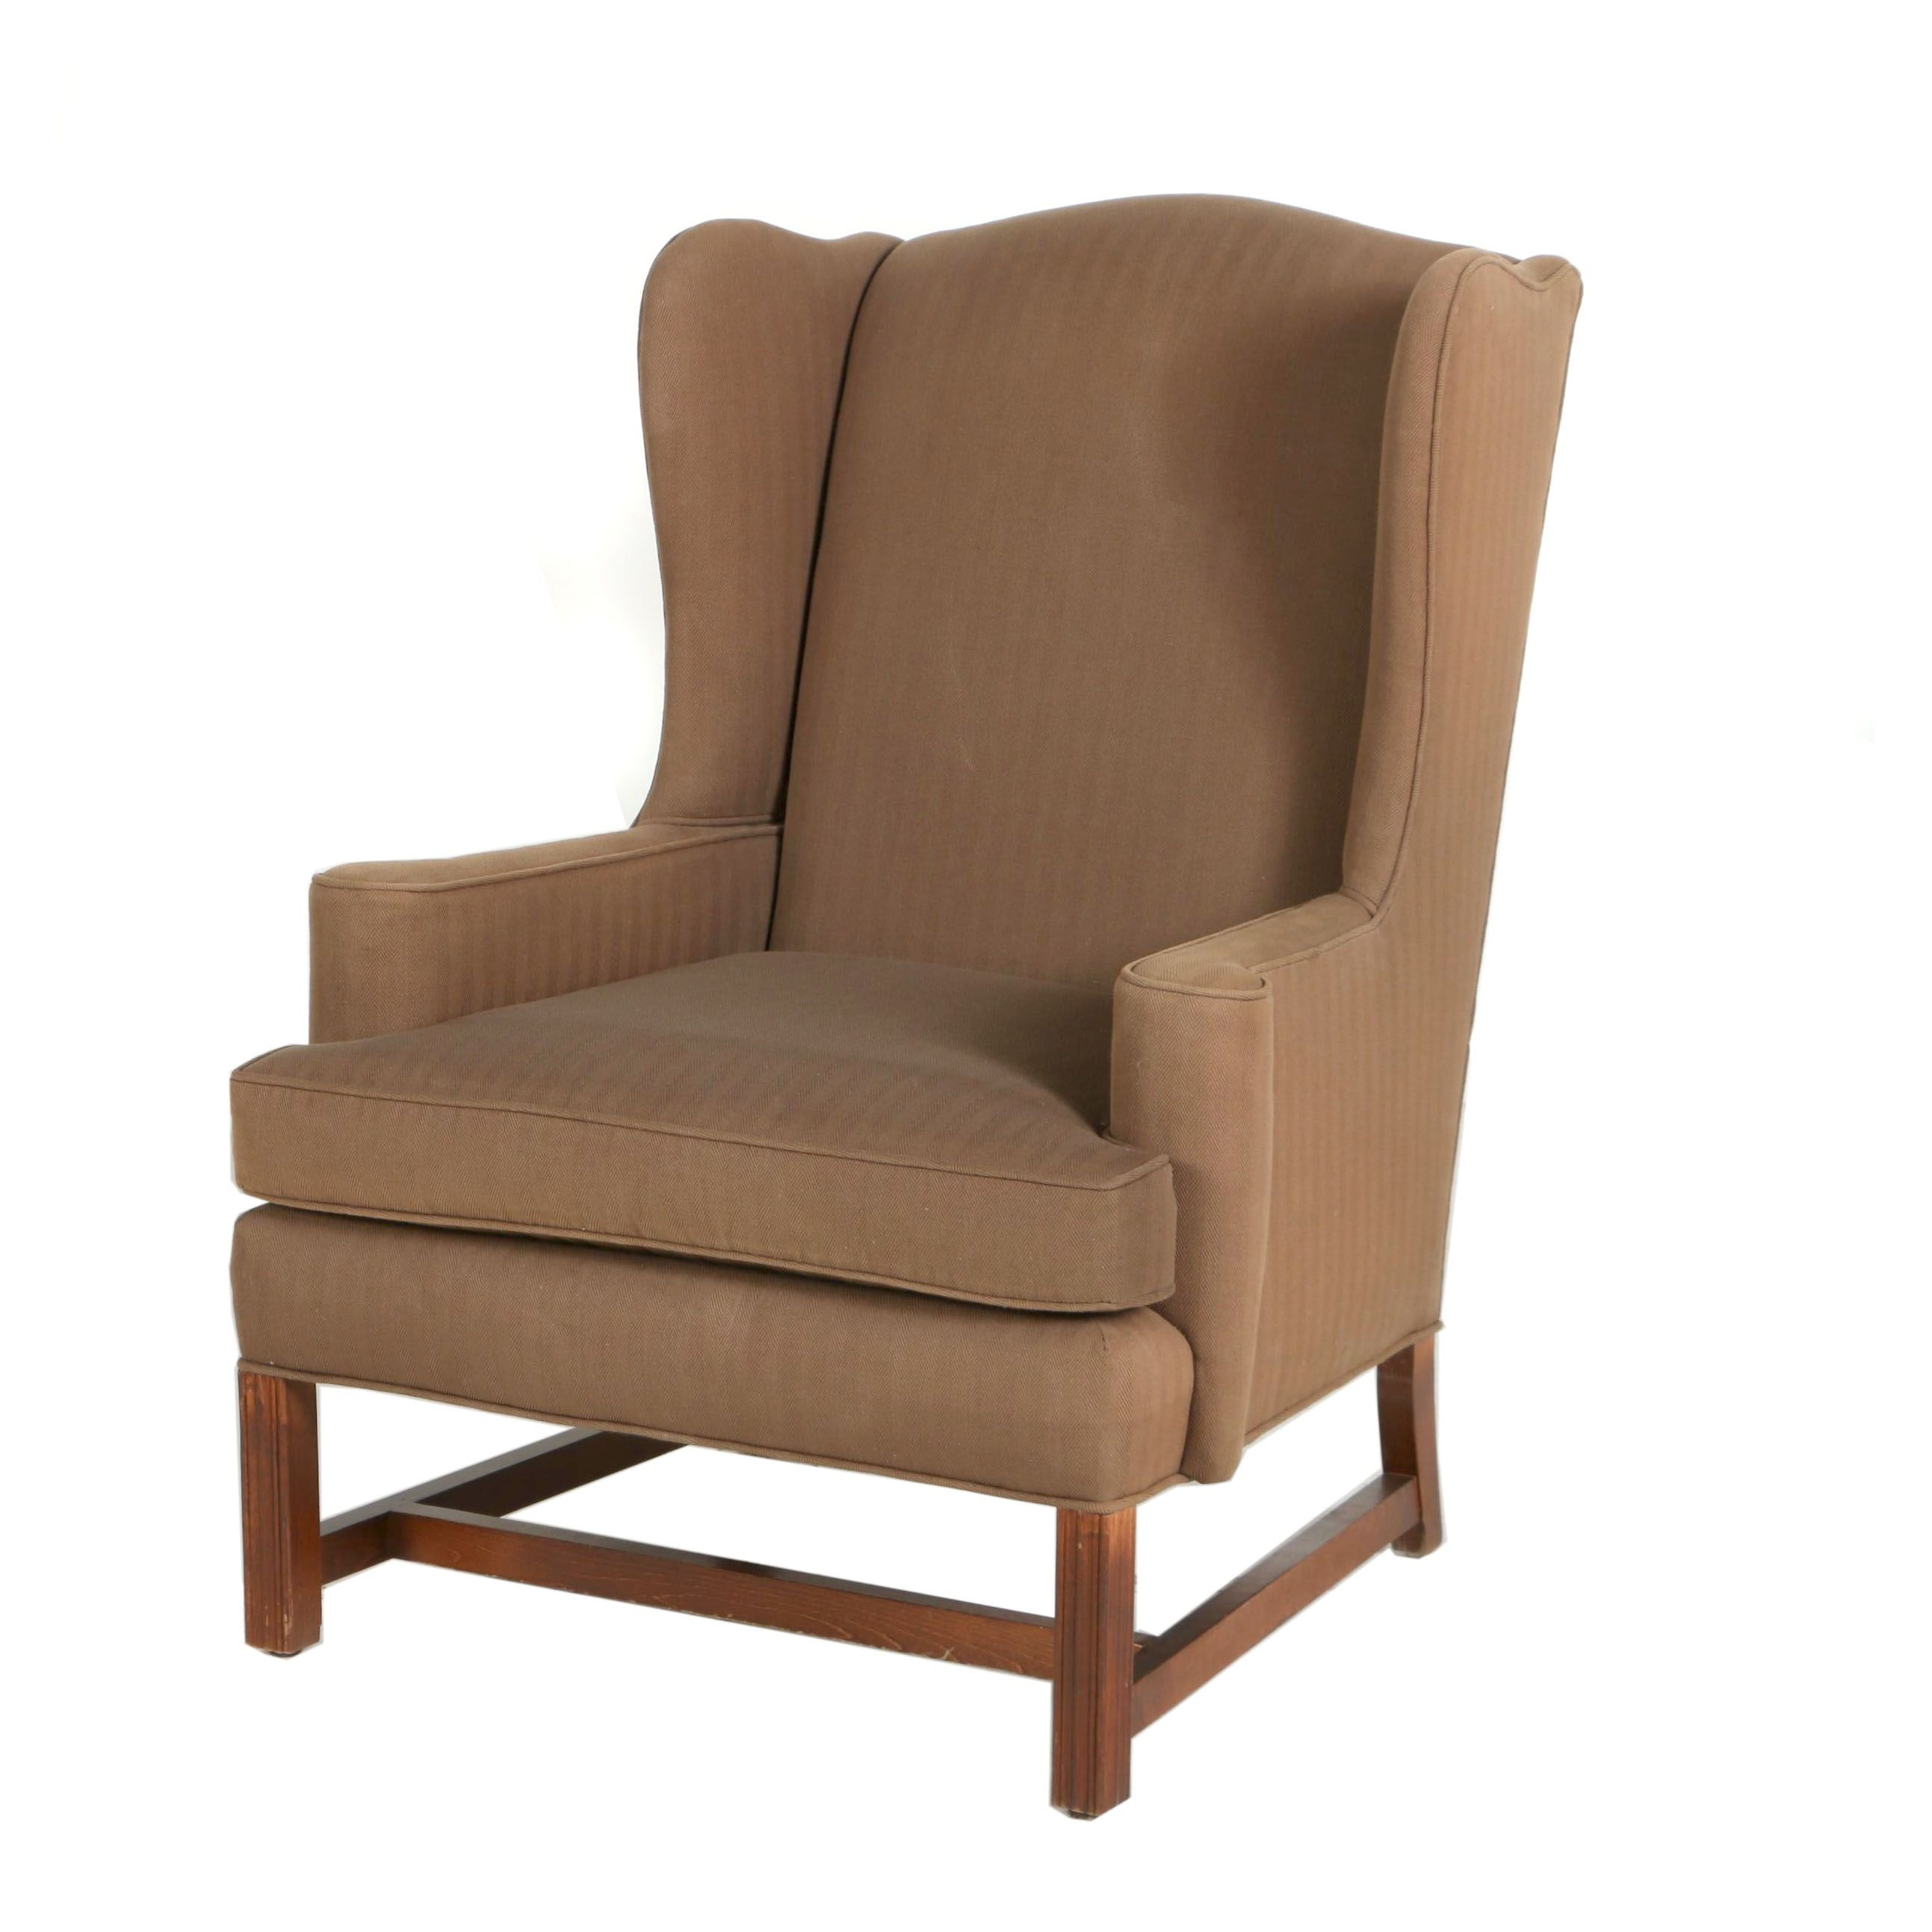 George III Style Mahogany-Stained Wingback Armchair, 20th Century